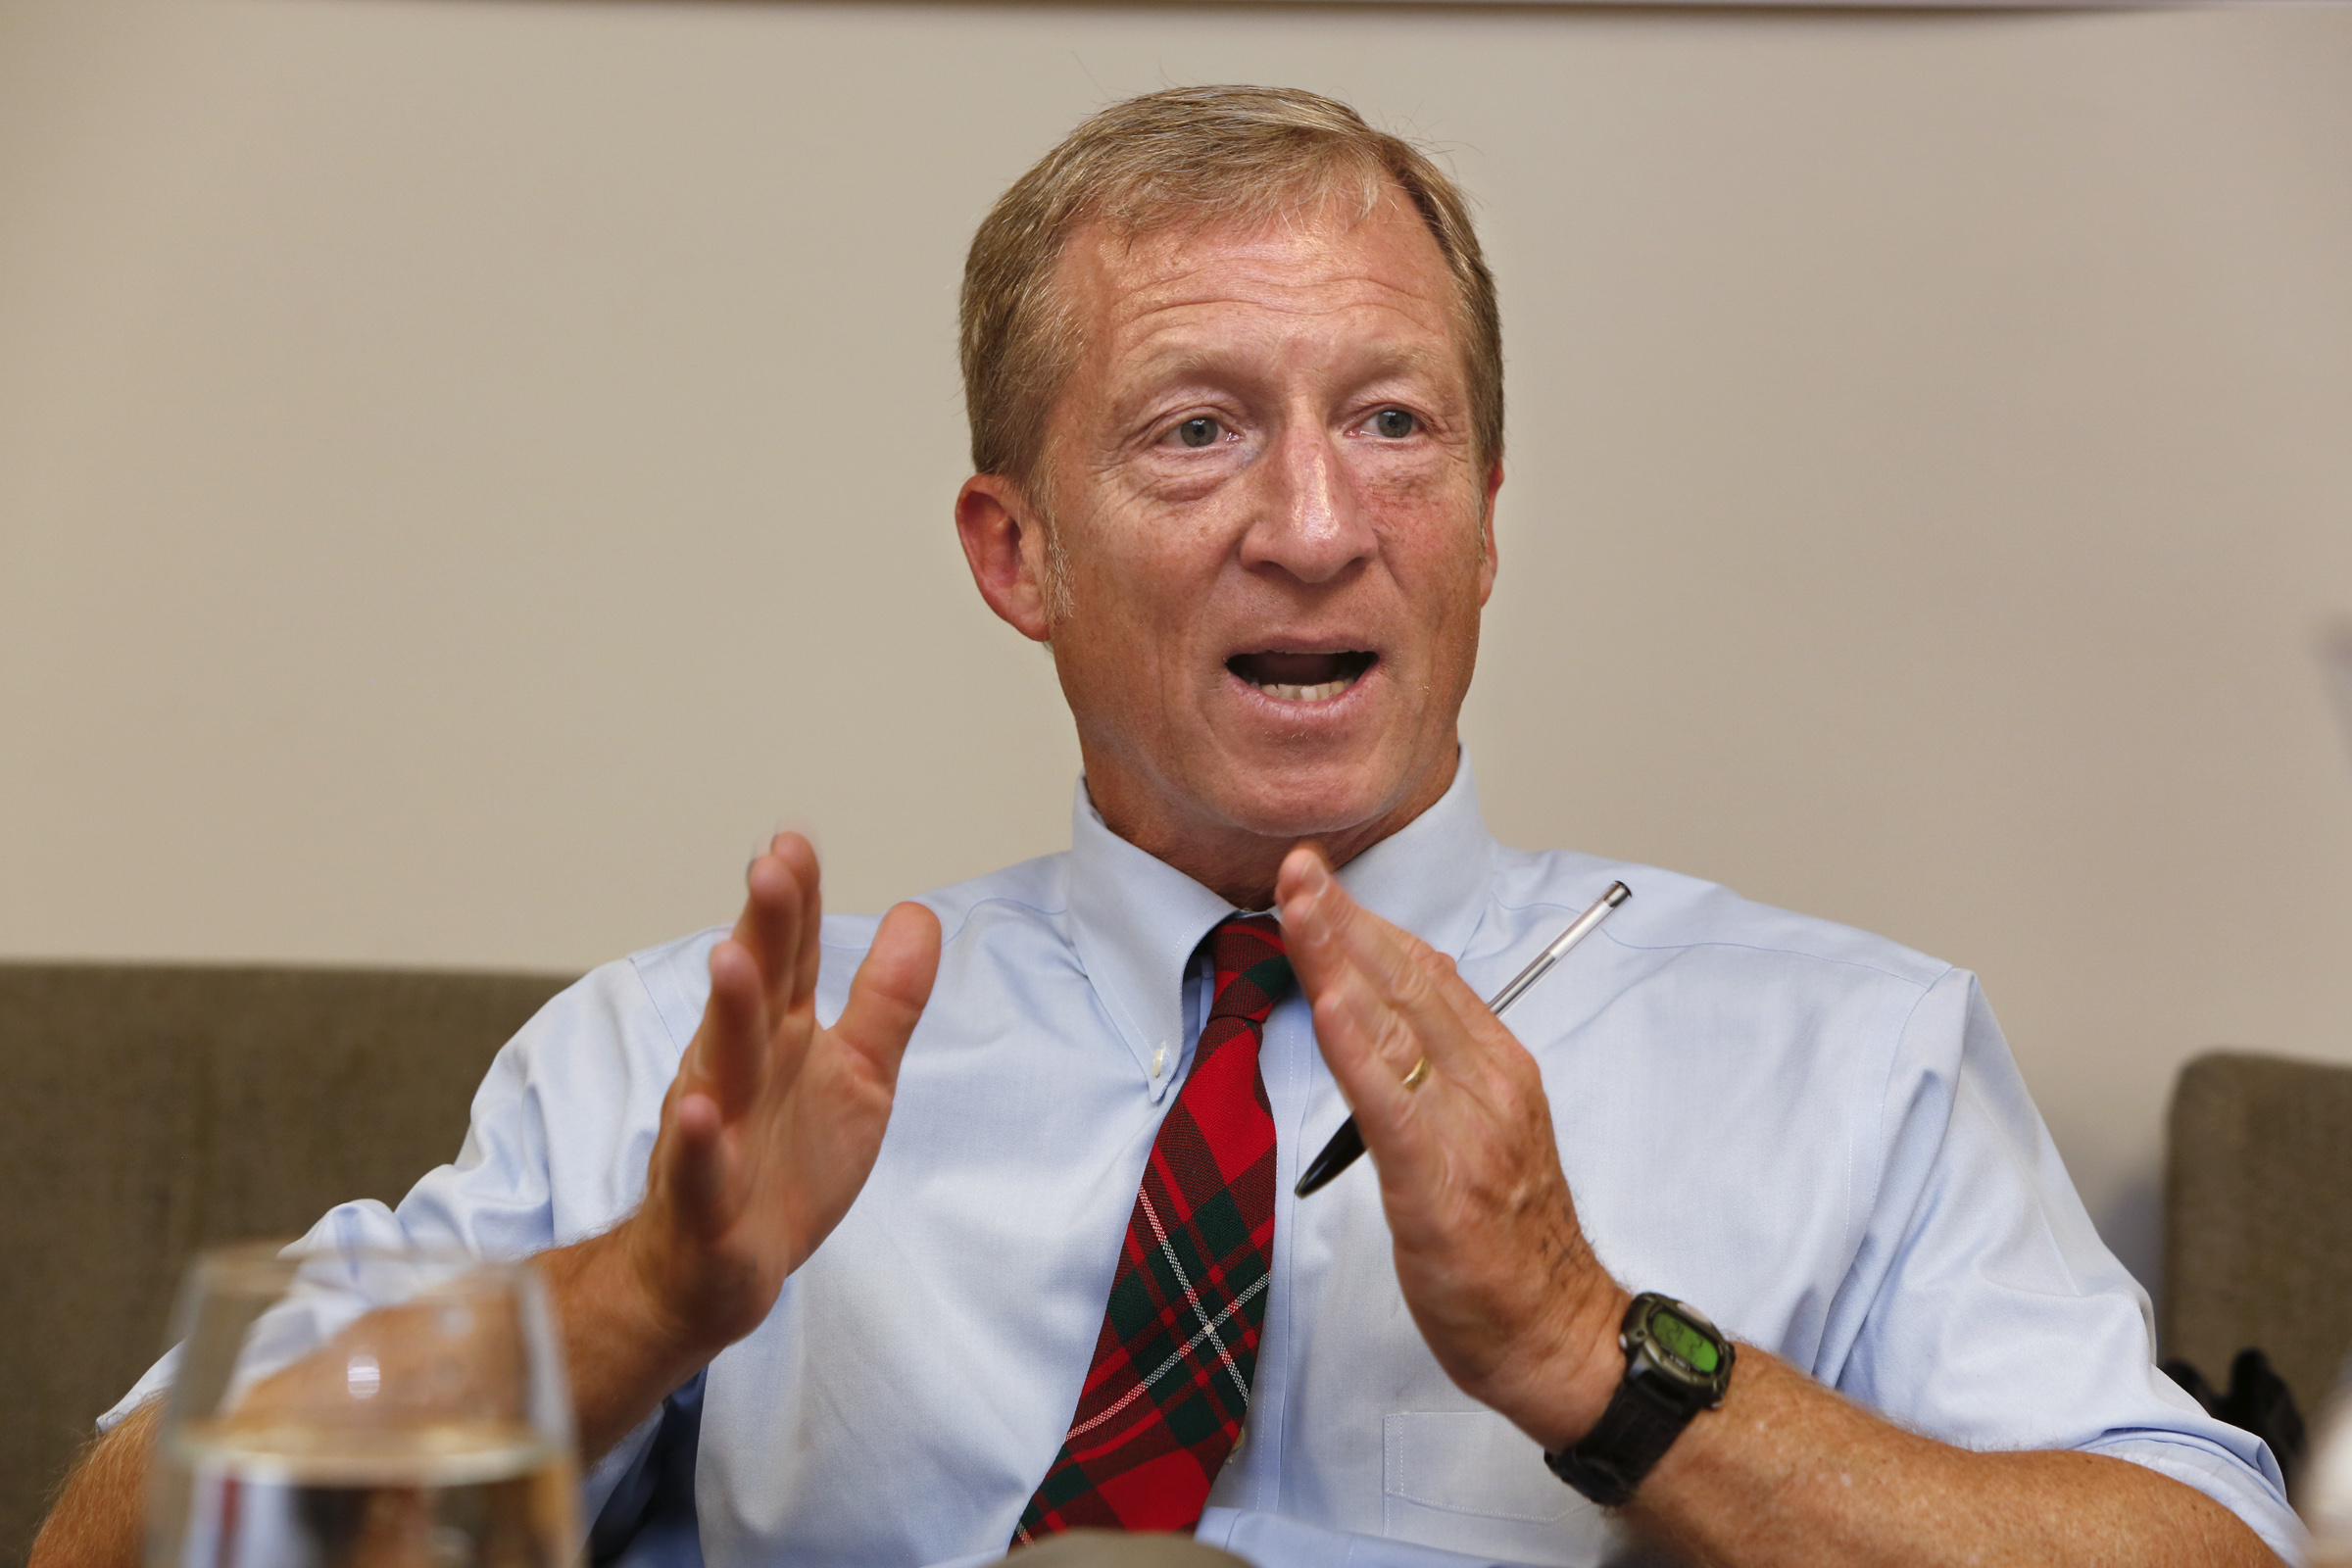 LOS ANGELES, CA.-JULY 29, 2014: President of NextGen Climate Tom Steyer  visits LAC and USC Medical